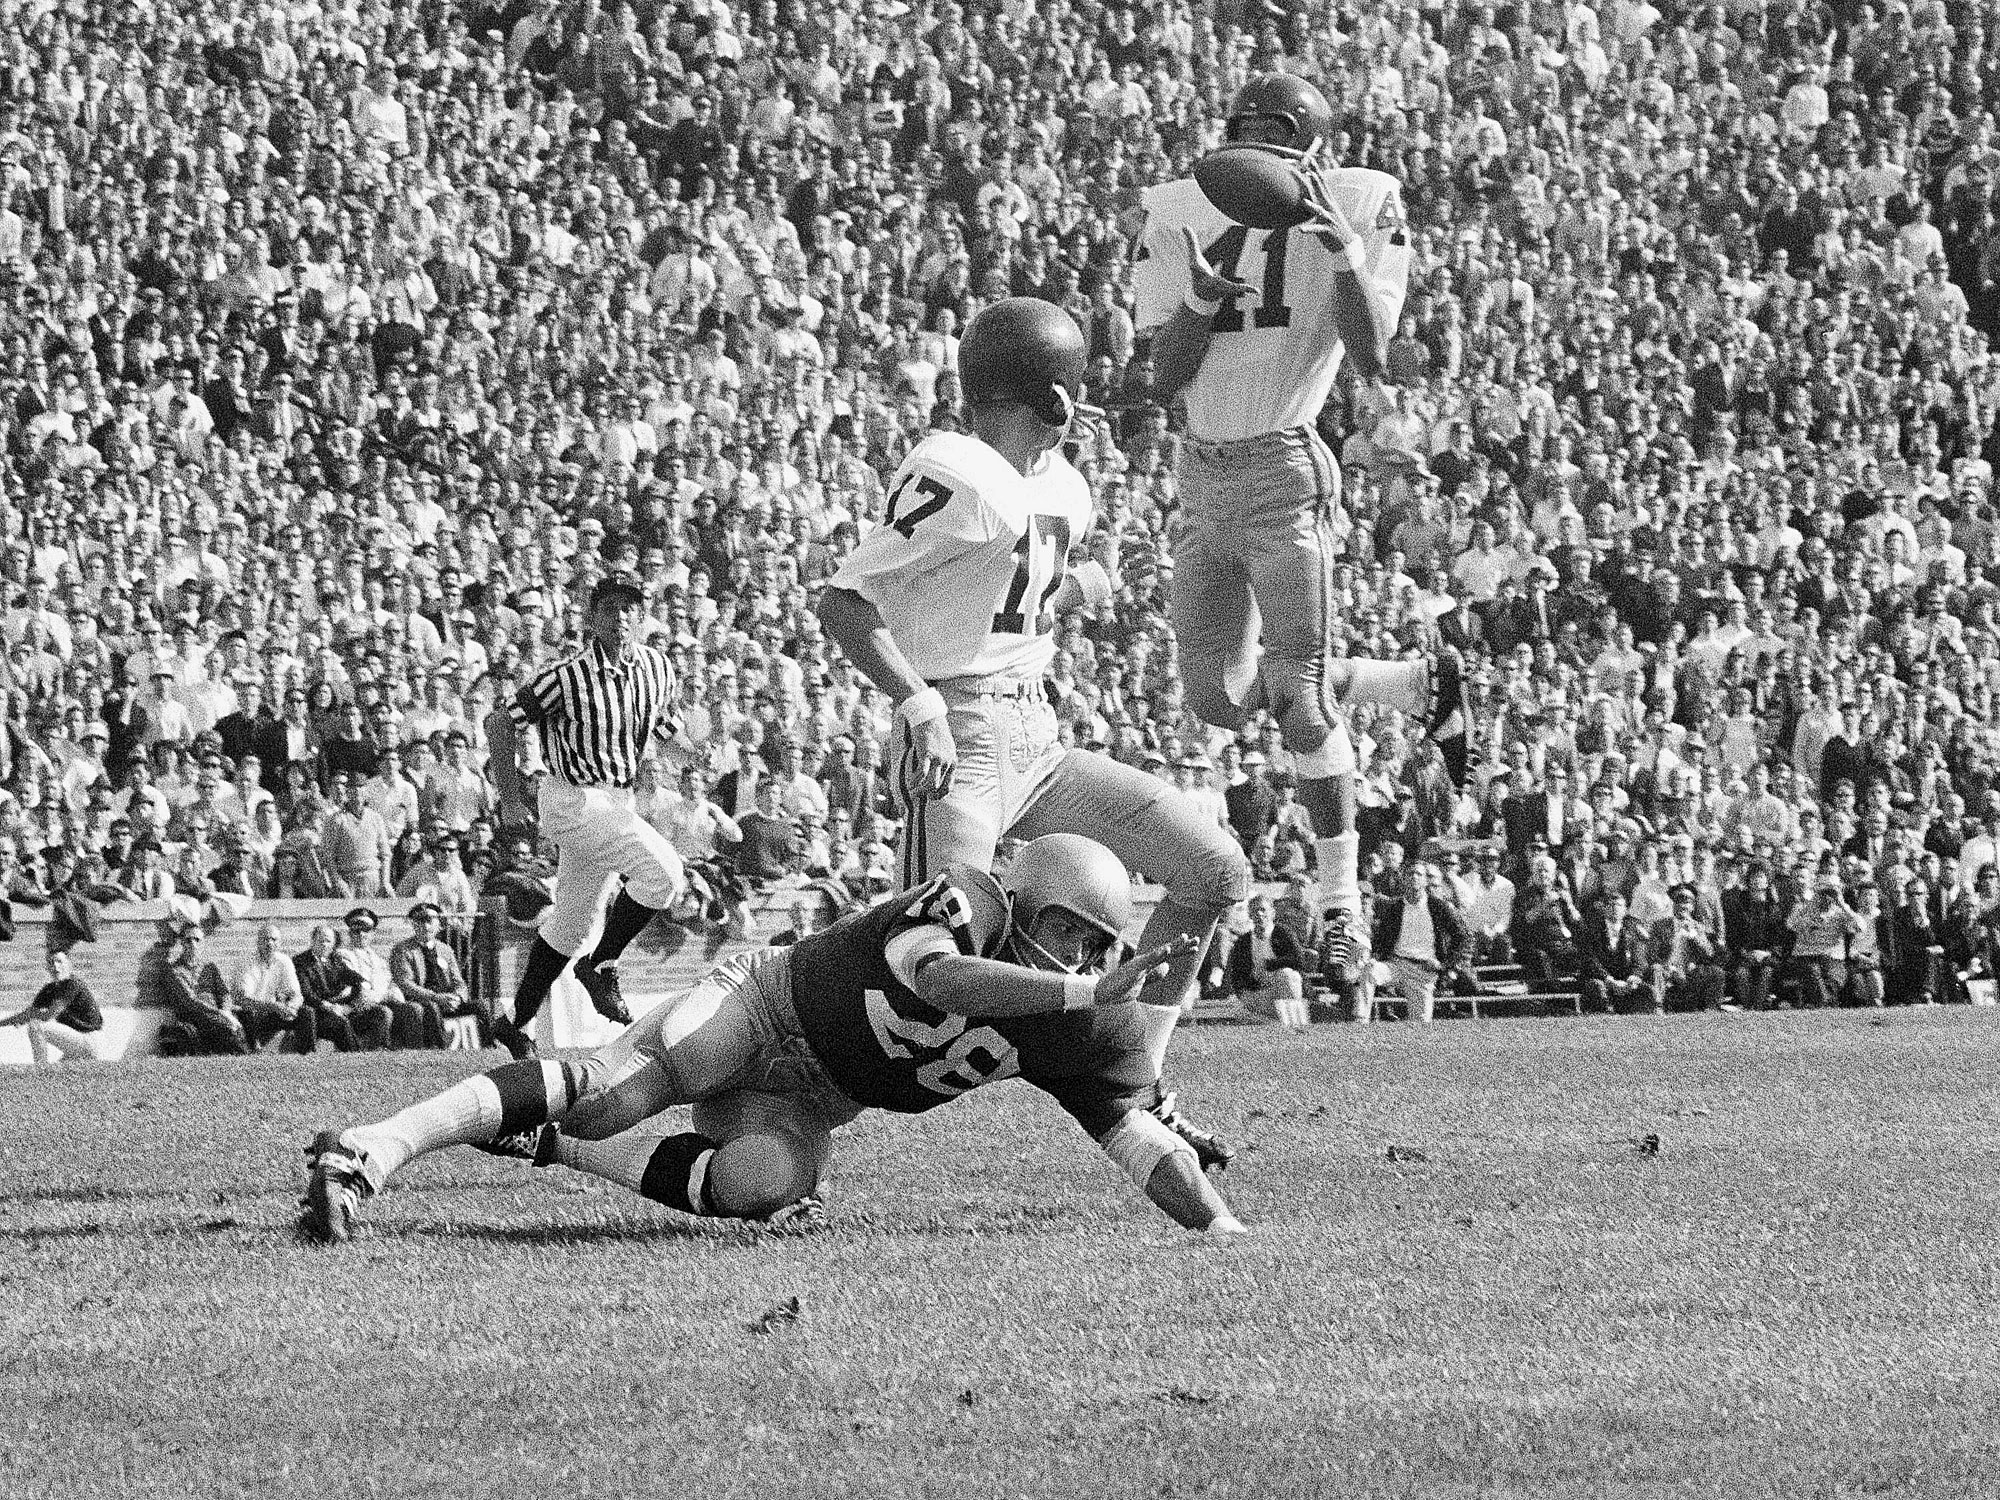 Jaroncyk's father, Bill, was a standout football player at USC in the late 1960s.